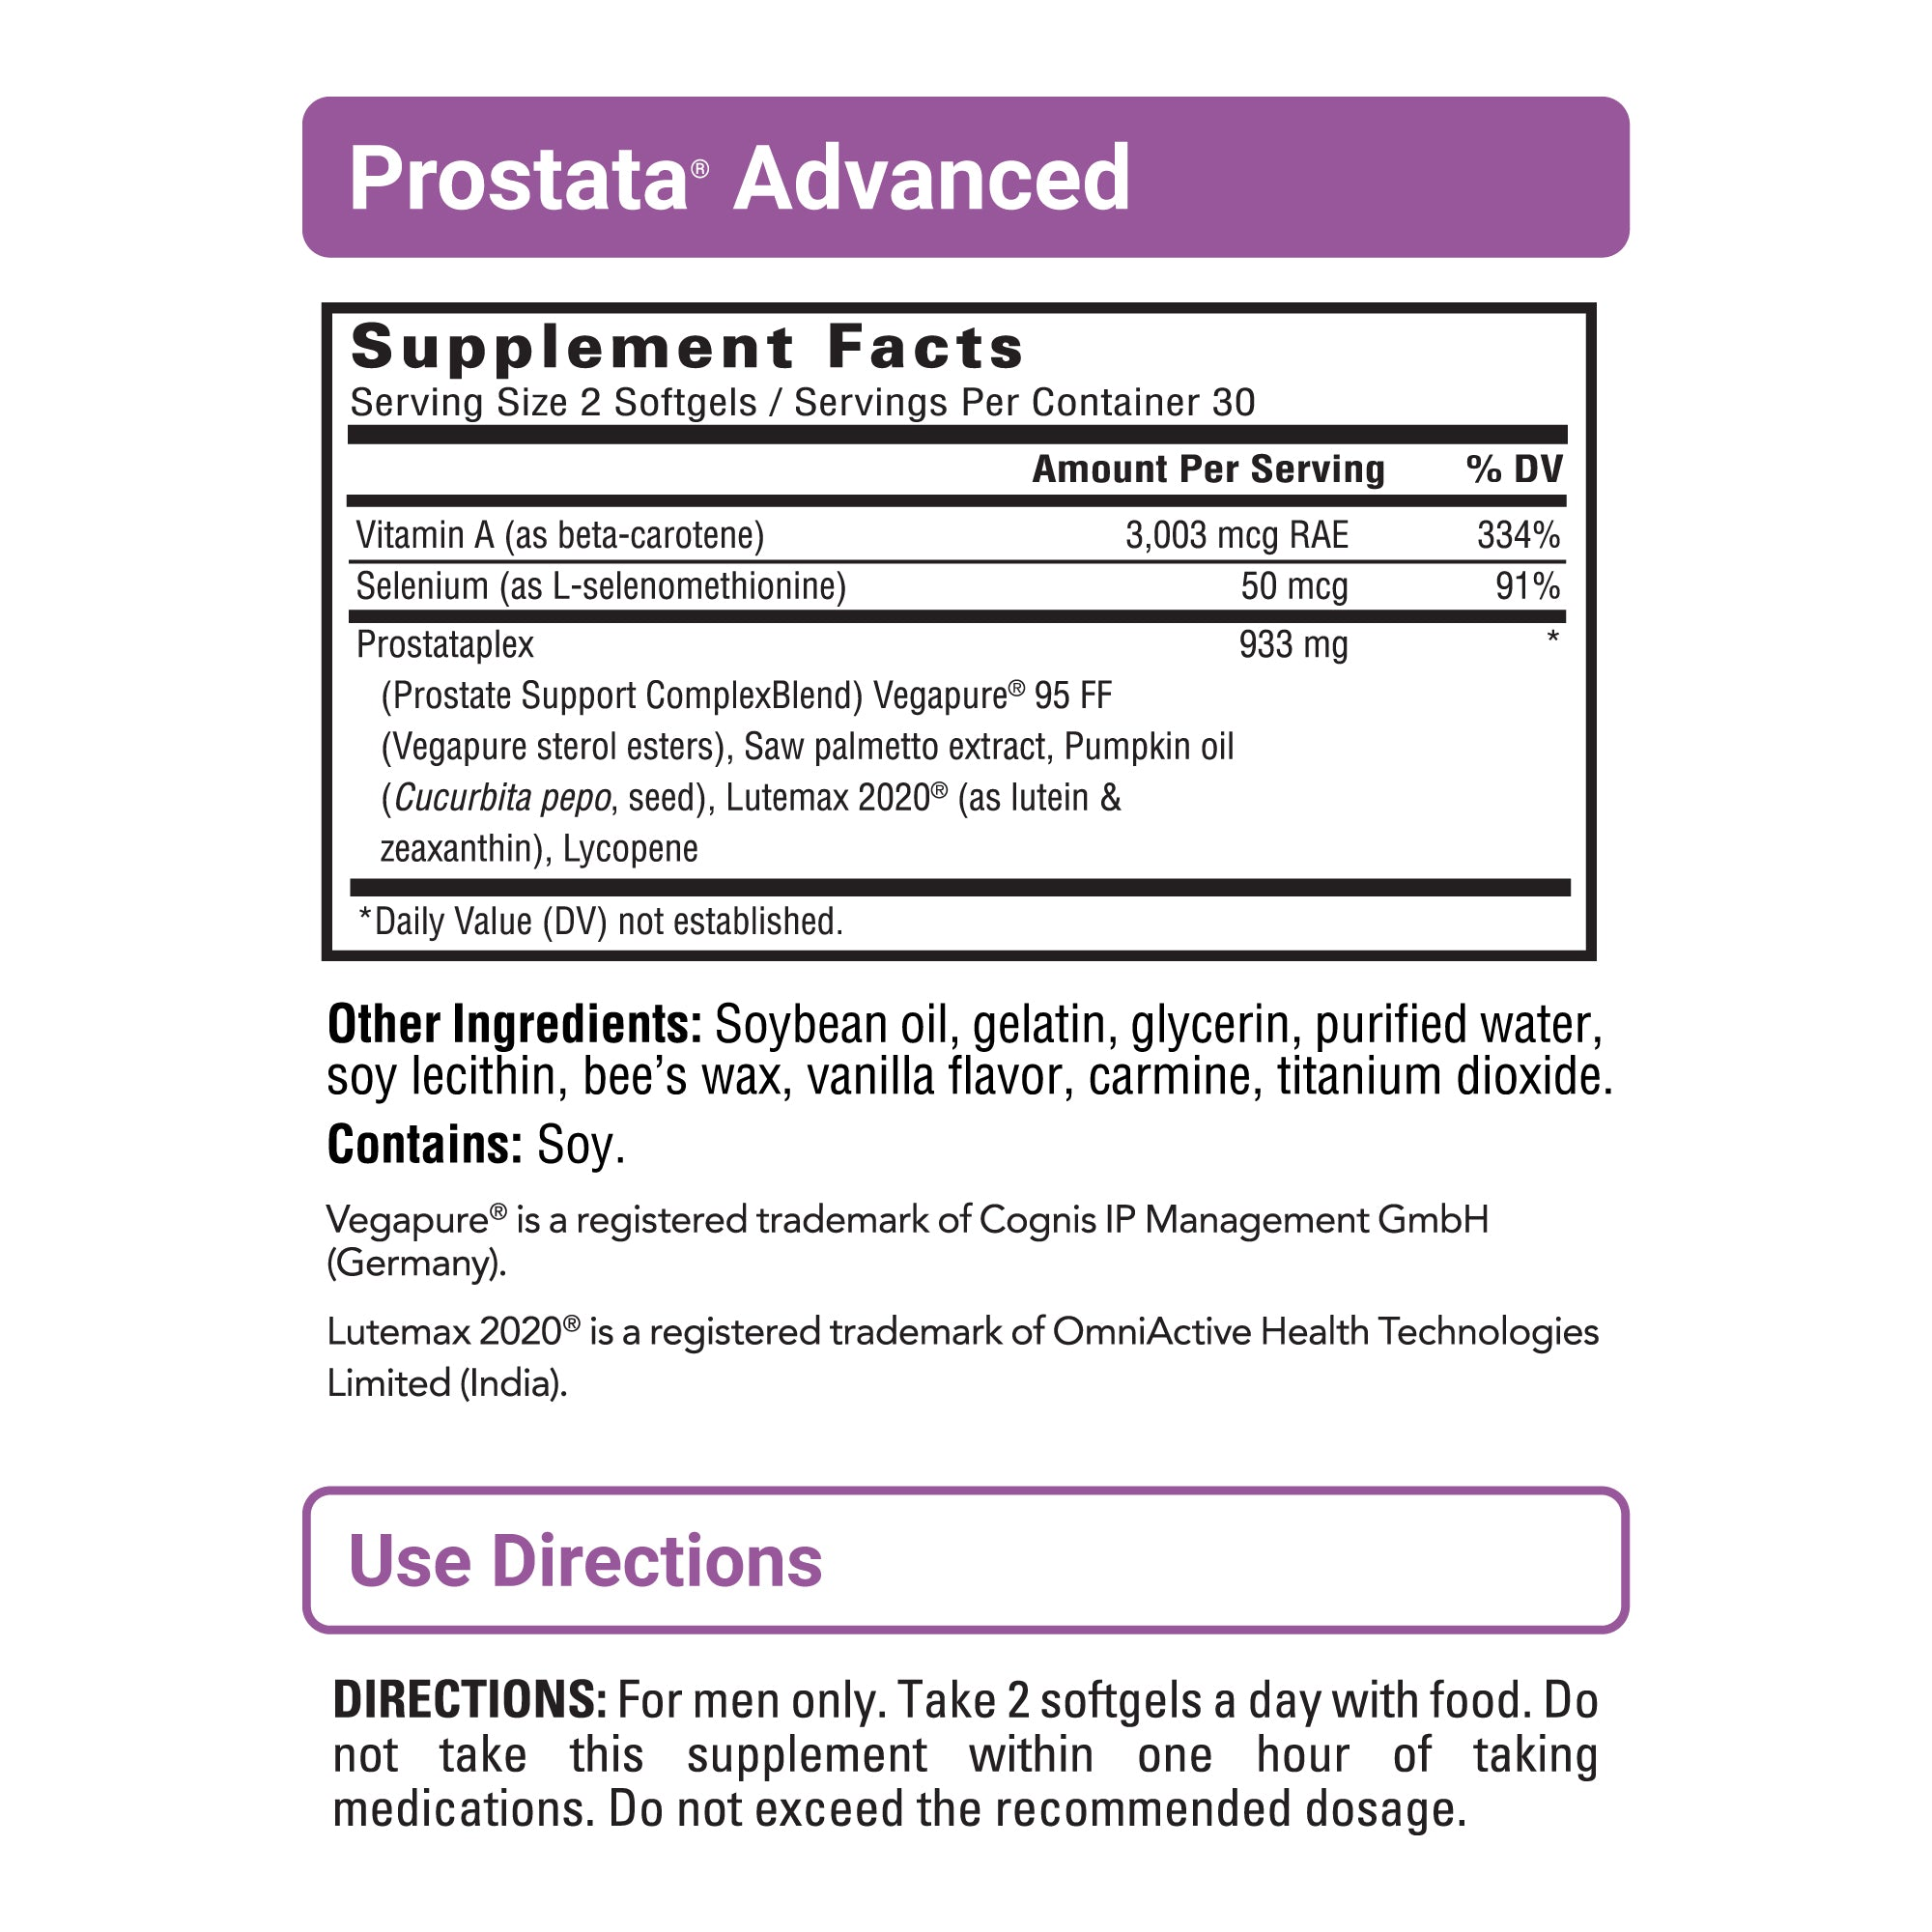 Prostata Advanced sup facts